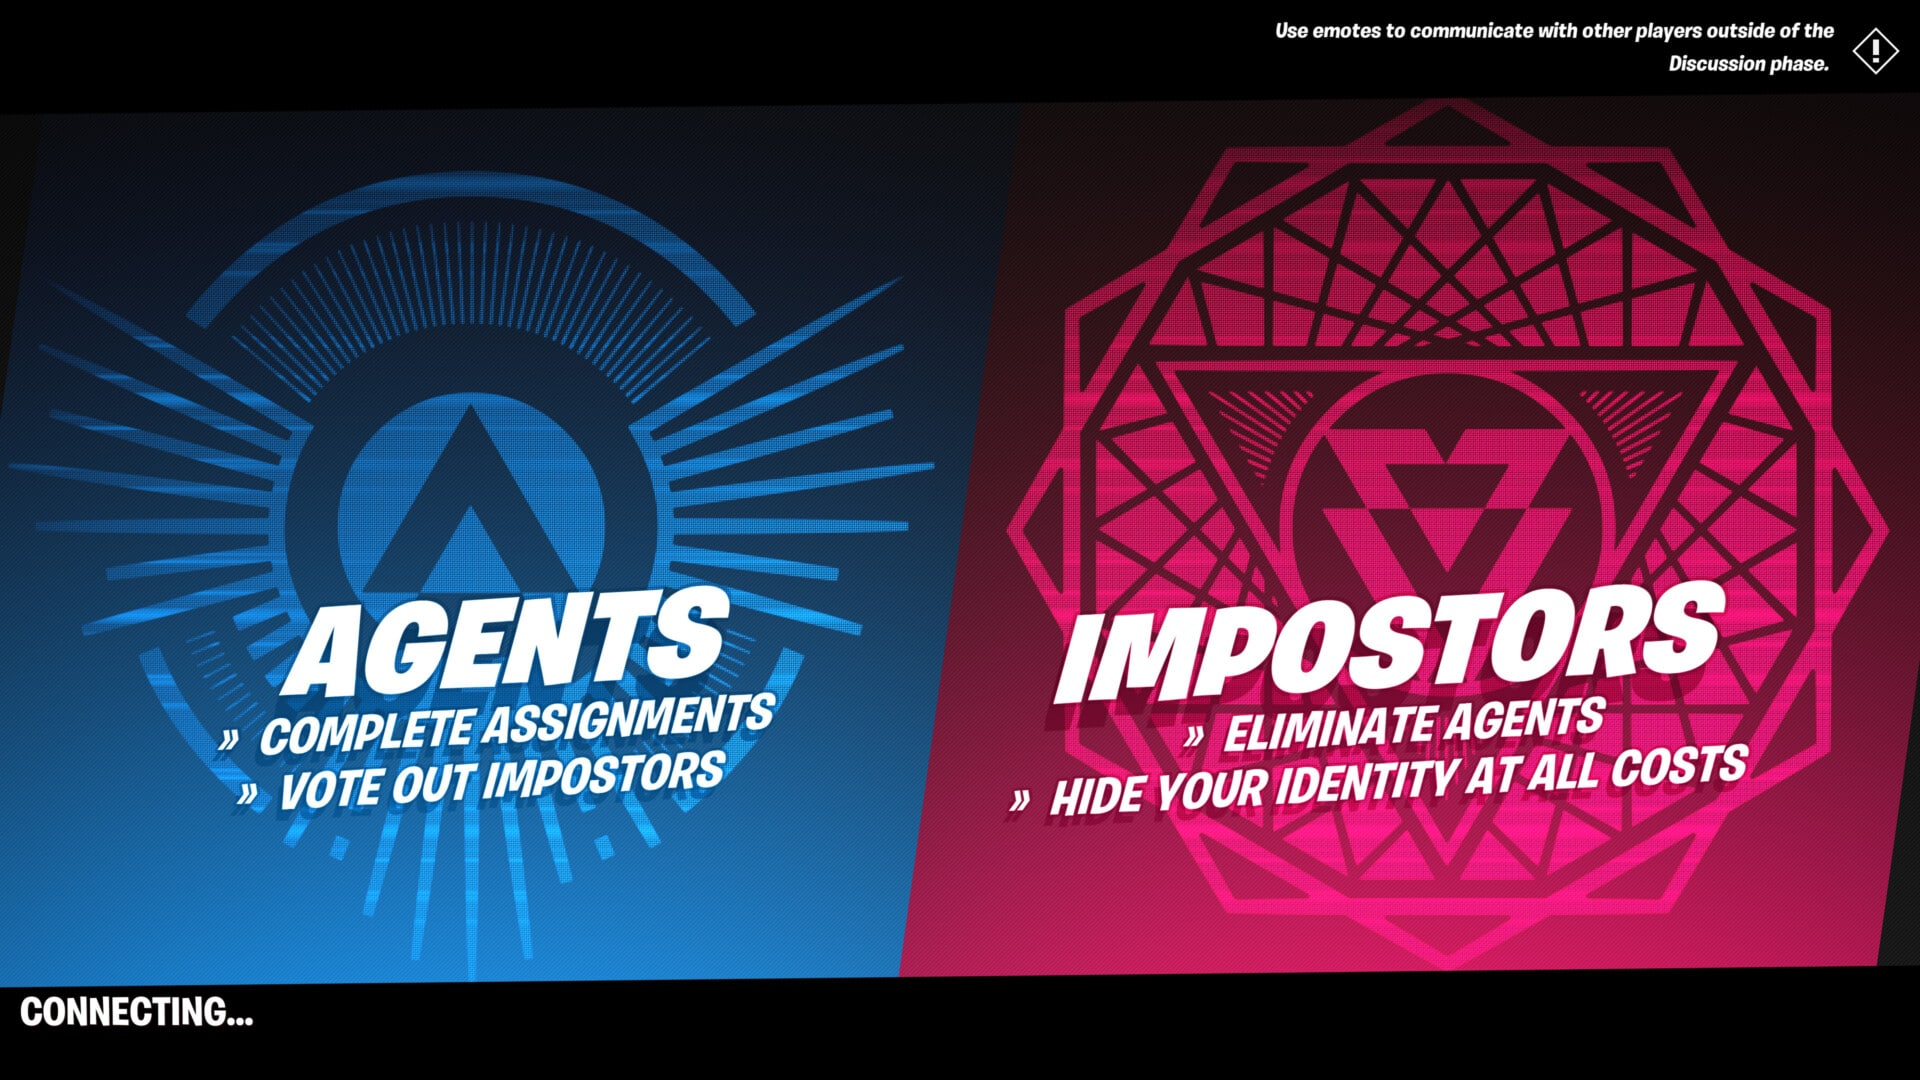 Epic Games fortnite impostors steals from and is a rip-off knock-off discount value brand Among Us from Innersloth